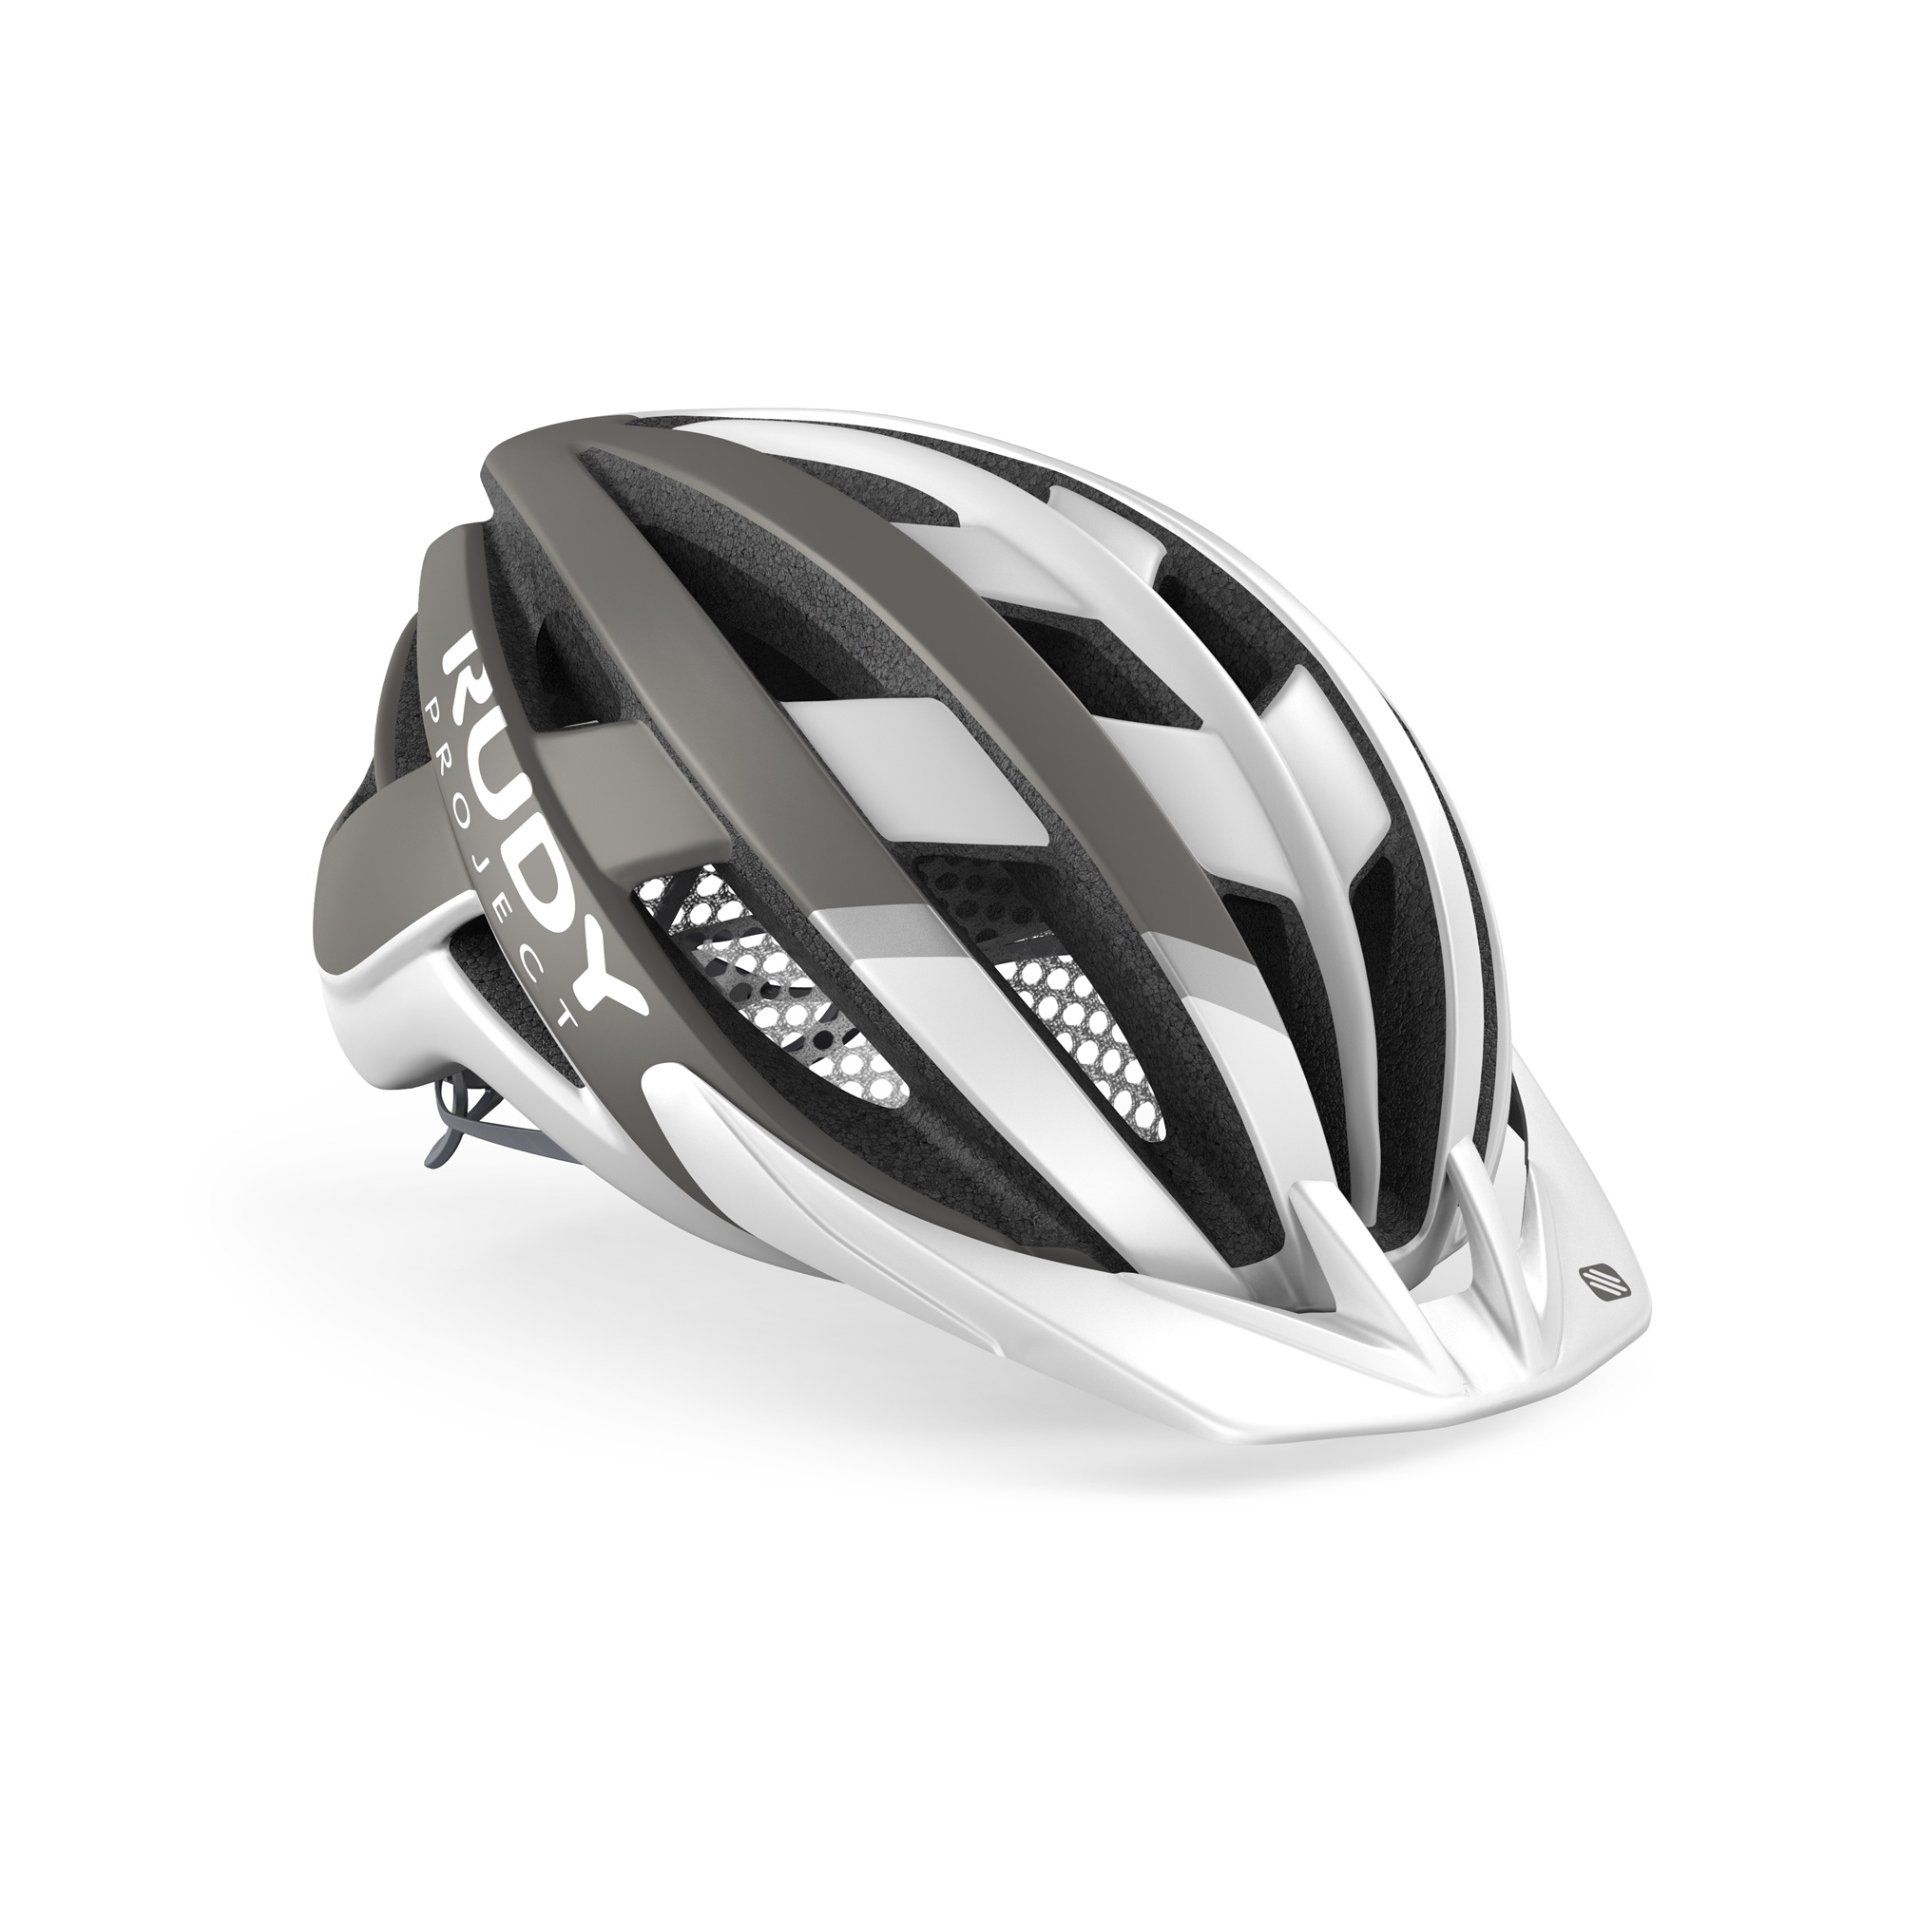 KASK ROWEROWY RUDY PROJECT VENGER CROSS WHITE|GREY HL660000